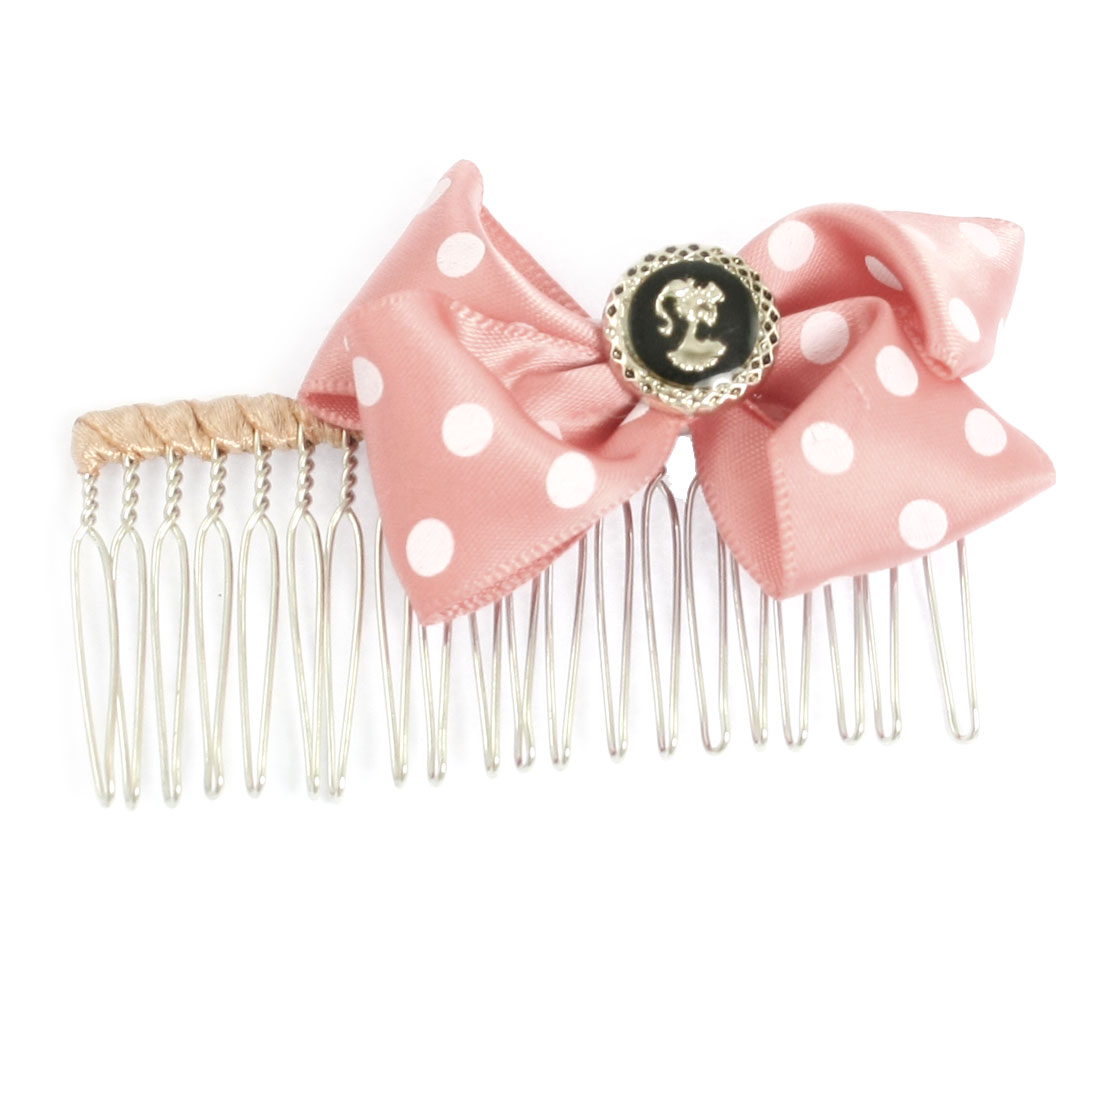 Hairstyling Dotted Watermelon Pink Bowknot Decor Looped Pin Metal Hair Comb